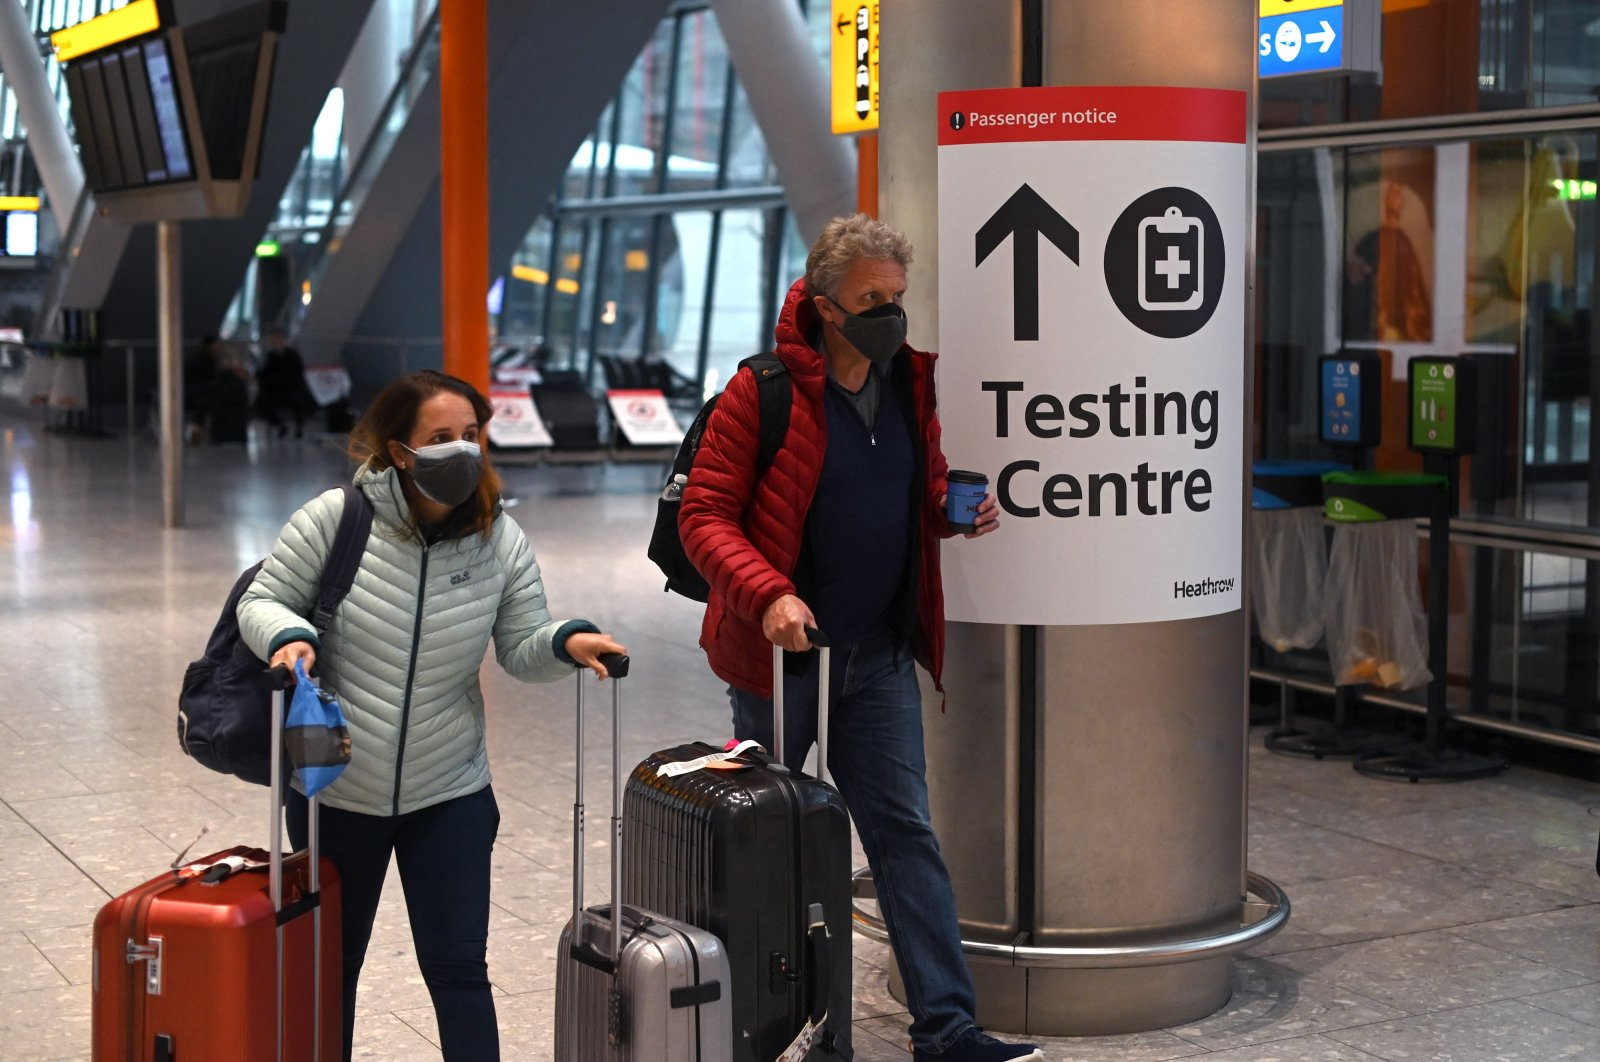 A sign directs passengers to a COVID-19 testing center at Terminal 5 of London Heathrow Airport in west London, the U.K., Feb. 9, 2021. (AFP Photo)